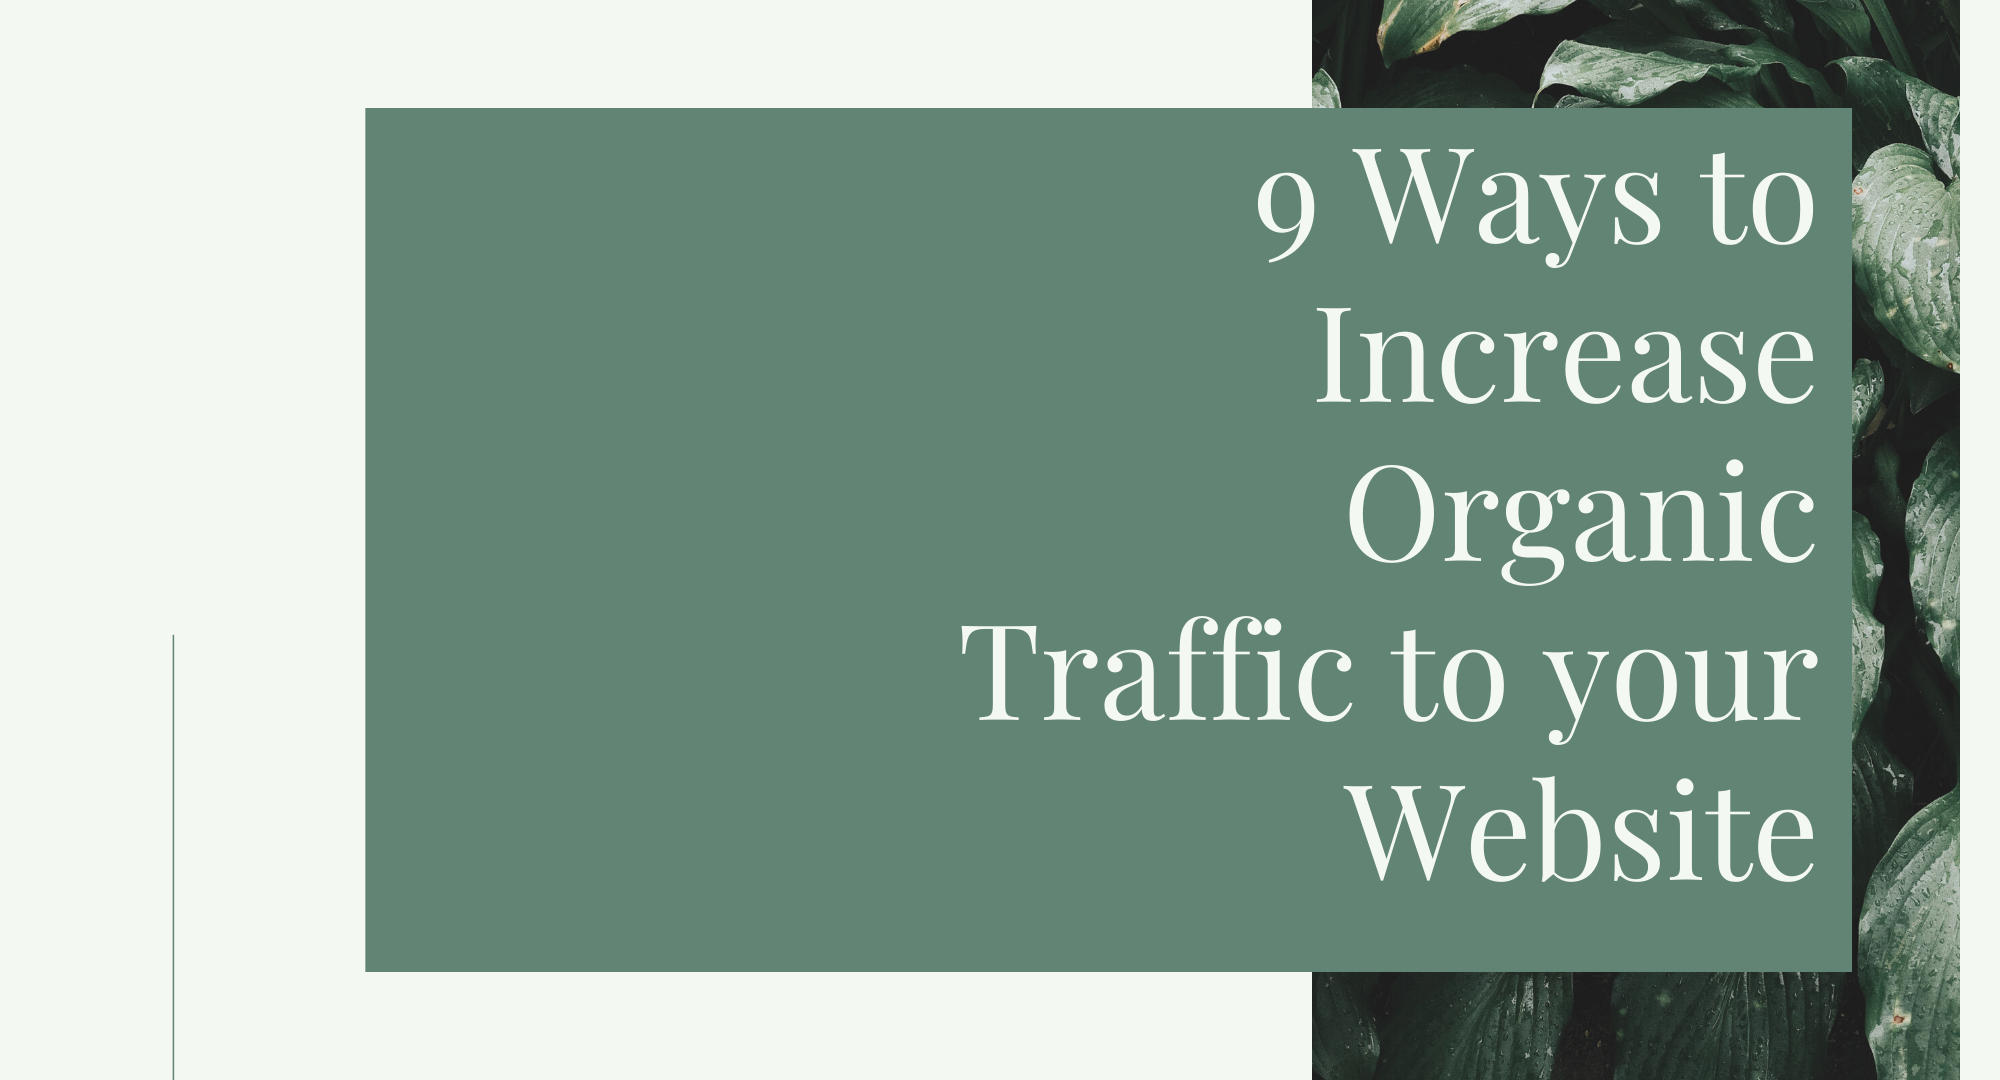 9 Ways to Increase Organic Traffic to Your Website